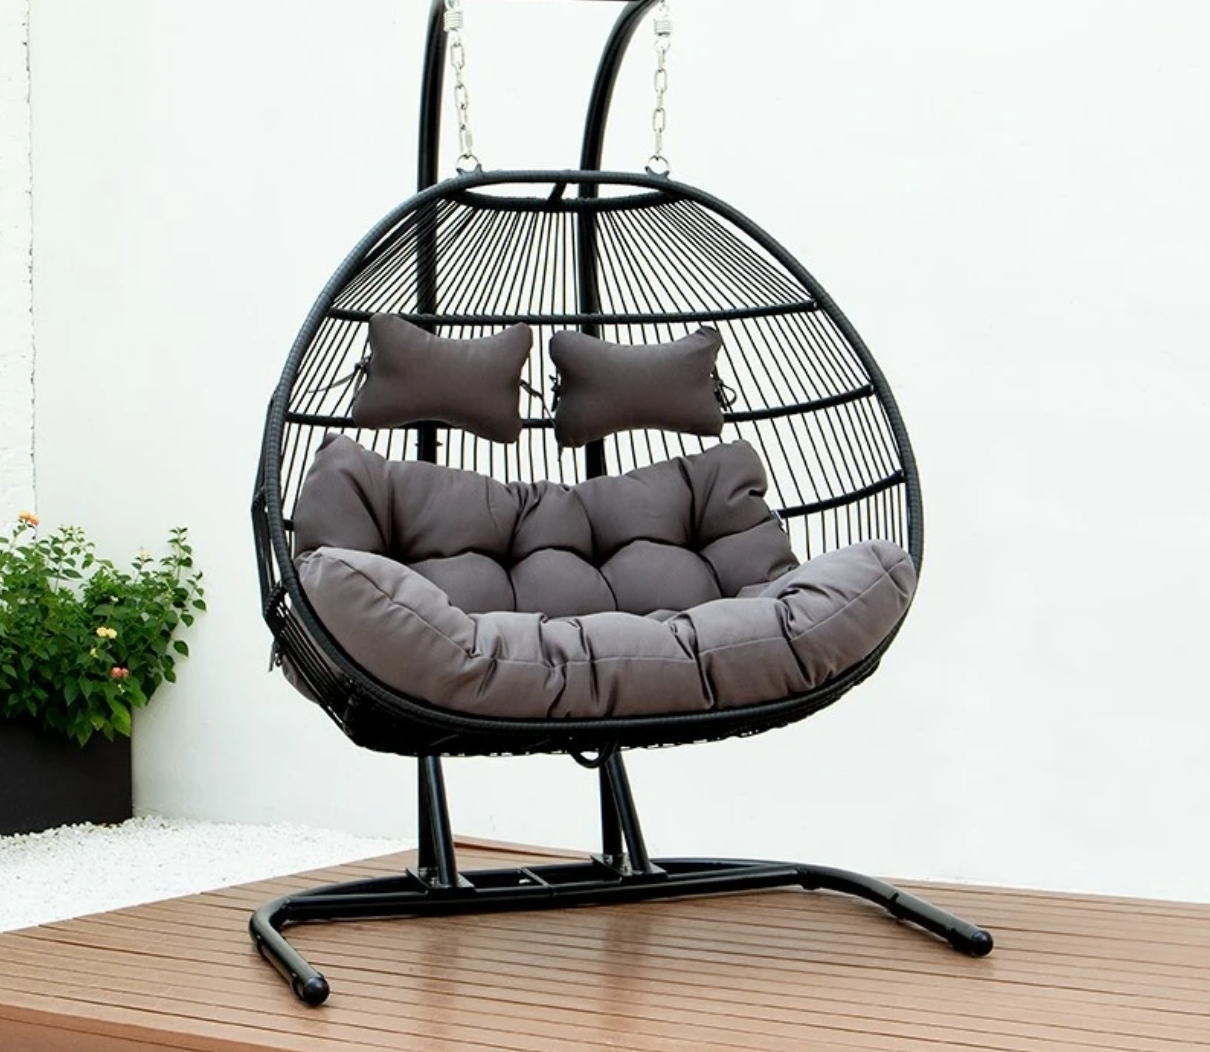 Hanging egg shaped swing seat. Egg shaped seat includes